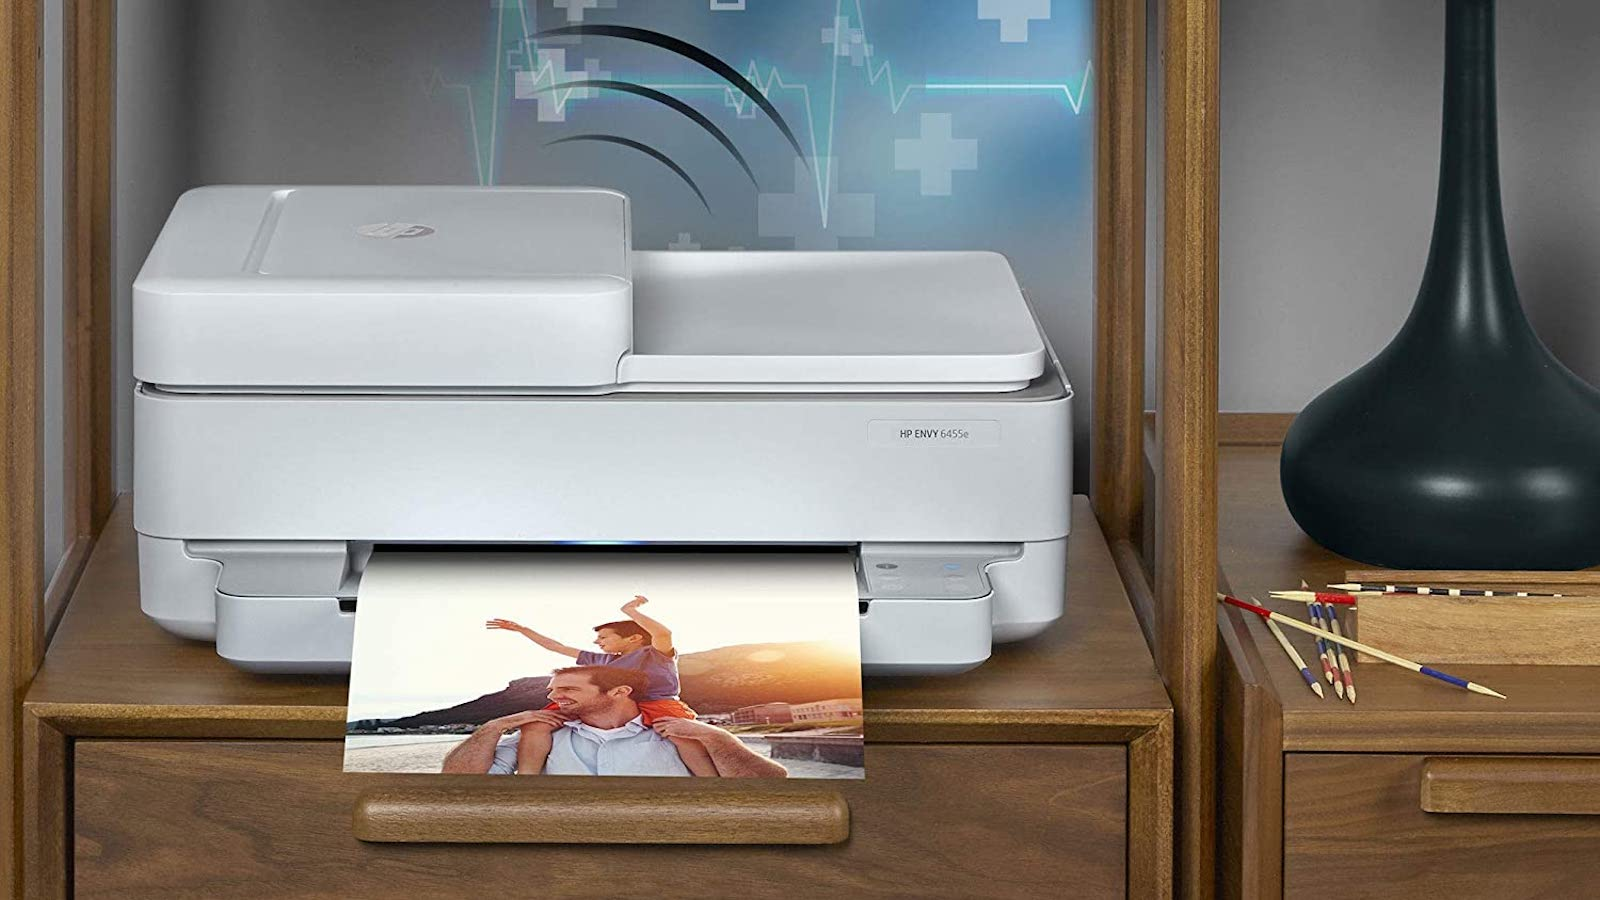 HP ENVY 6455e All-in-One Printer includes Wi-Fi connectivity & print speeds of up to 7 ppm